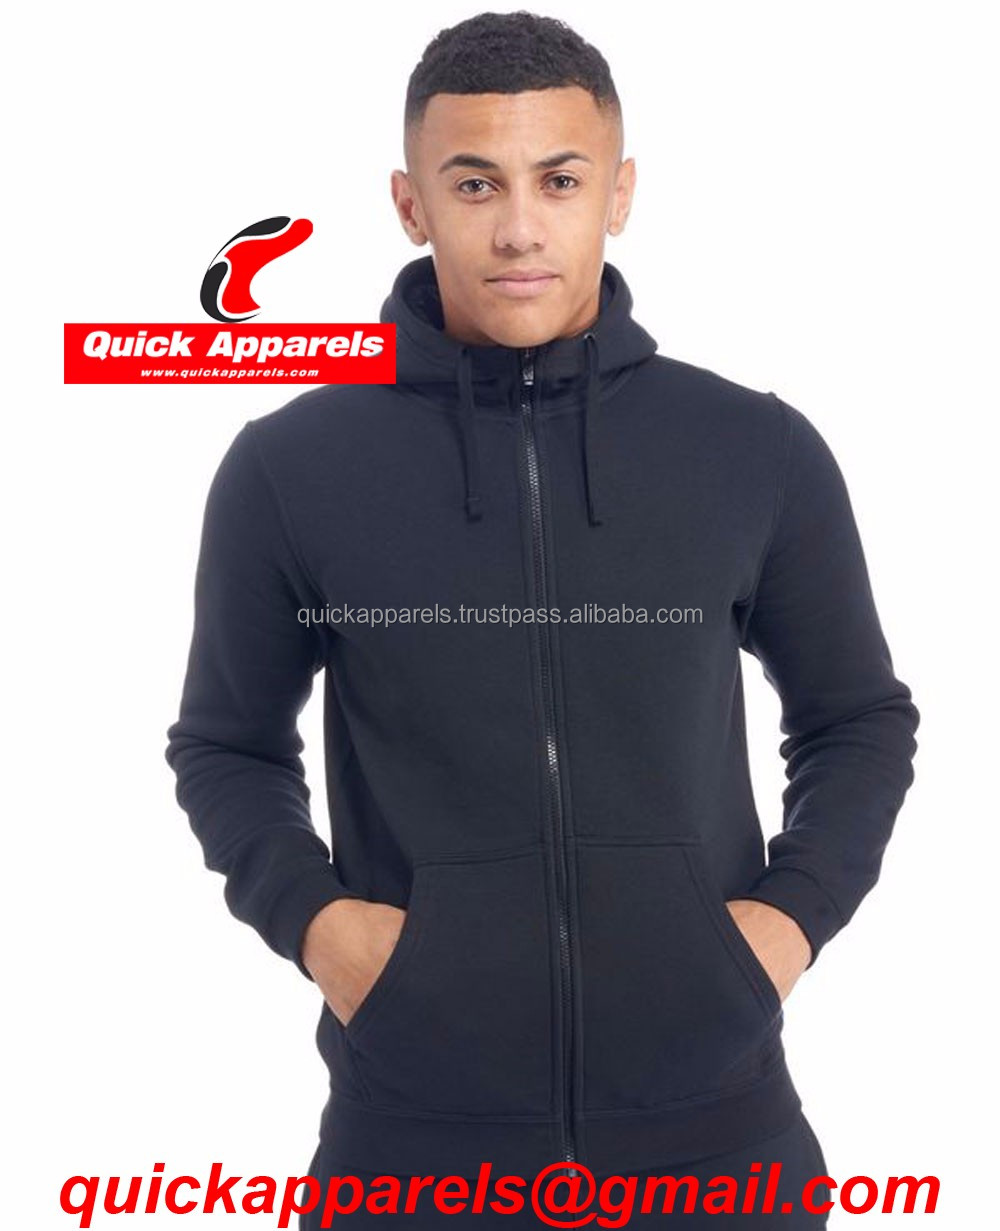 Zipper hoodie is one of the most warm fashion unisex hoodies